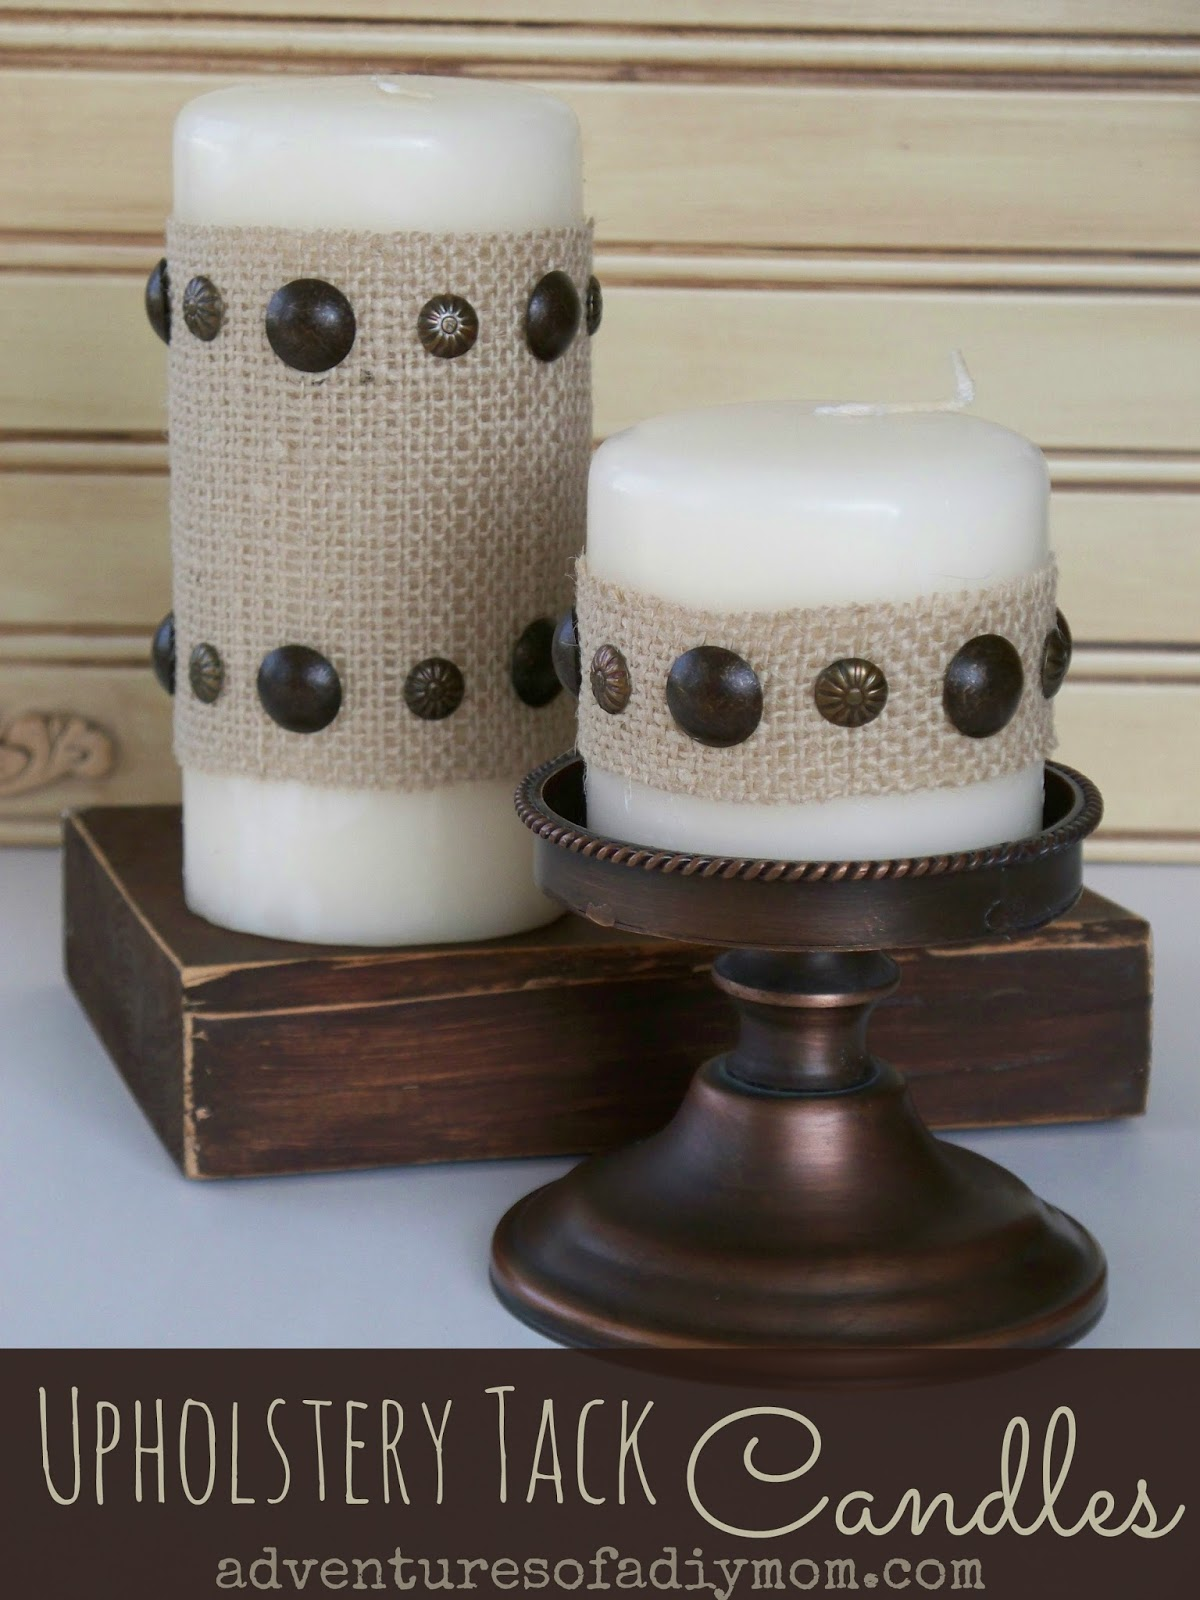 Upholstery Tack Candles